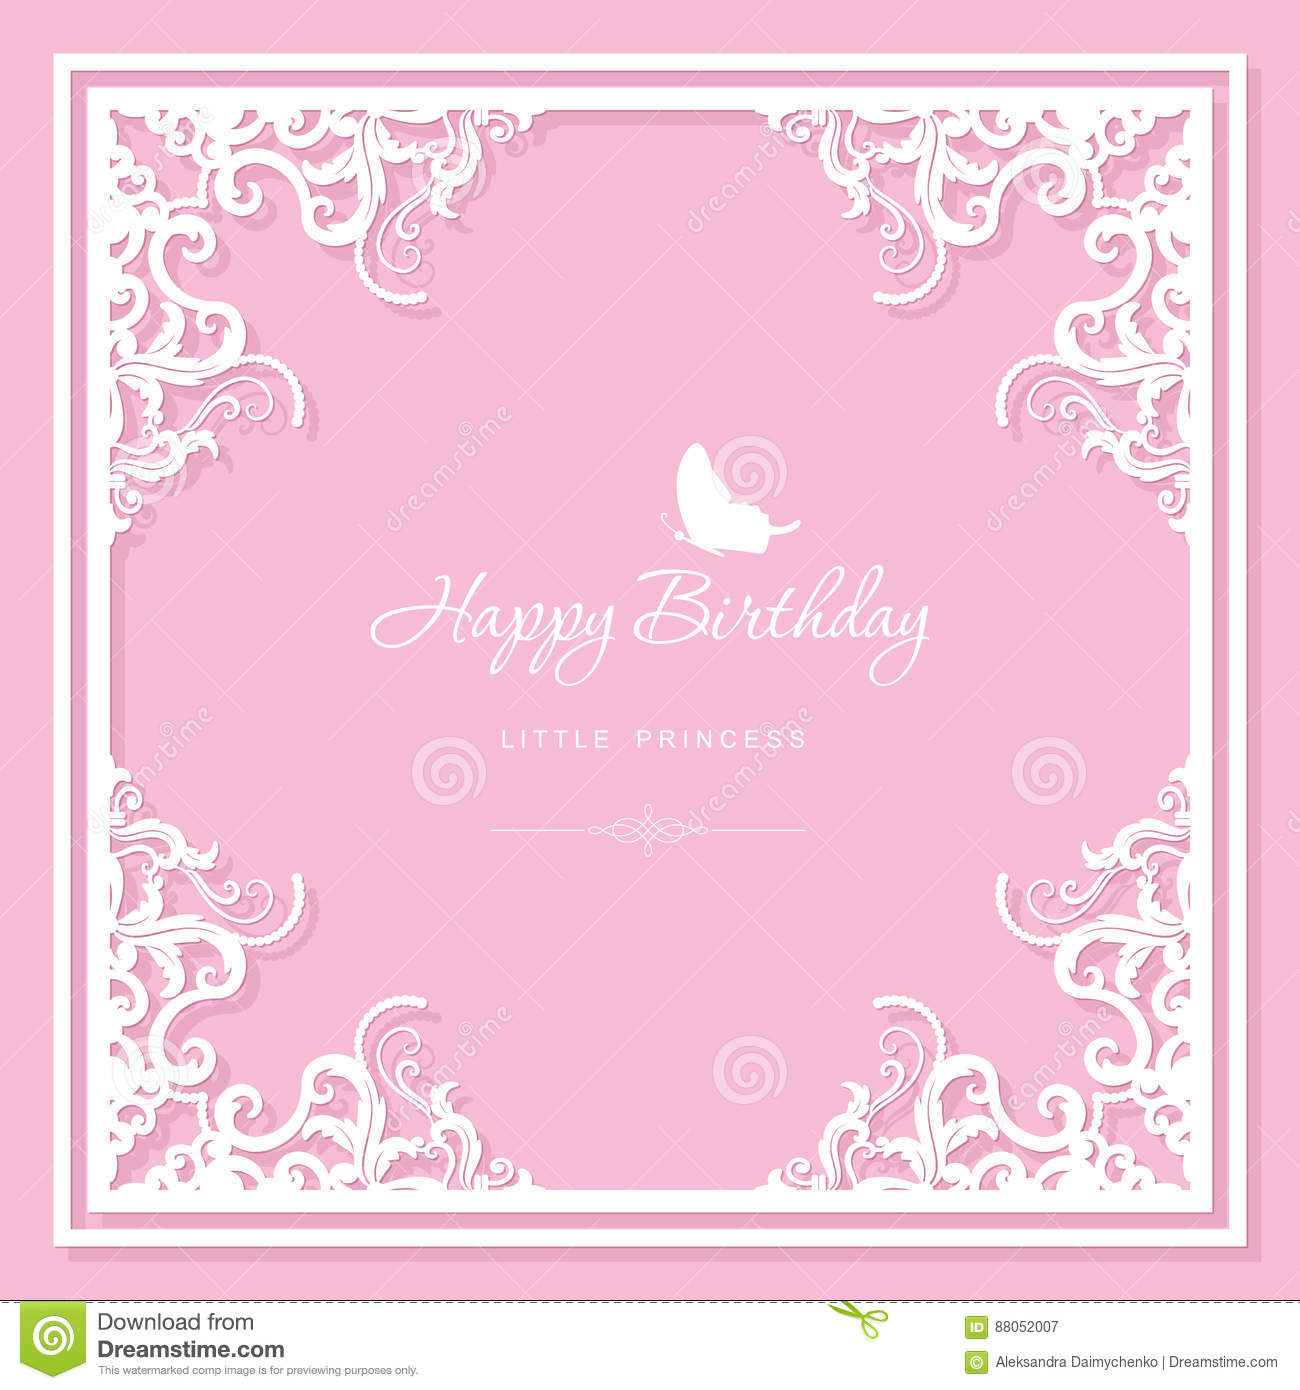 birthday greeting card template filigree laser cutting design for wedding